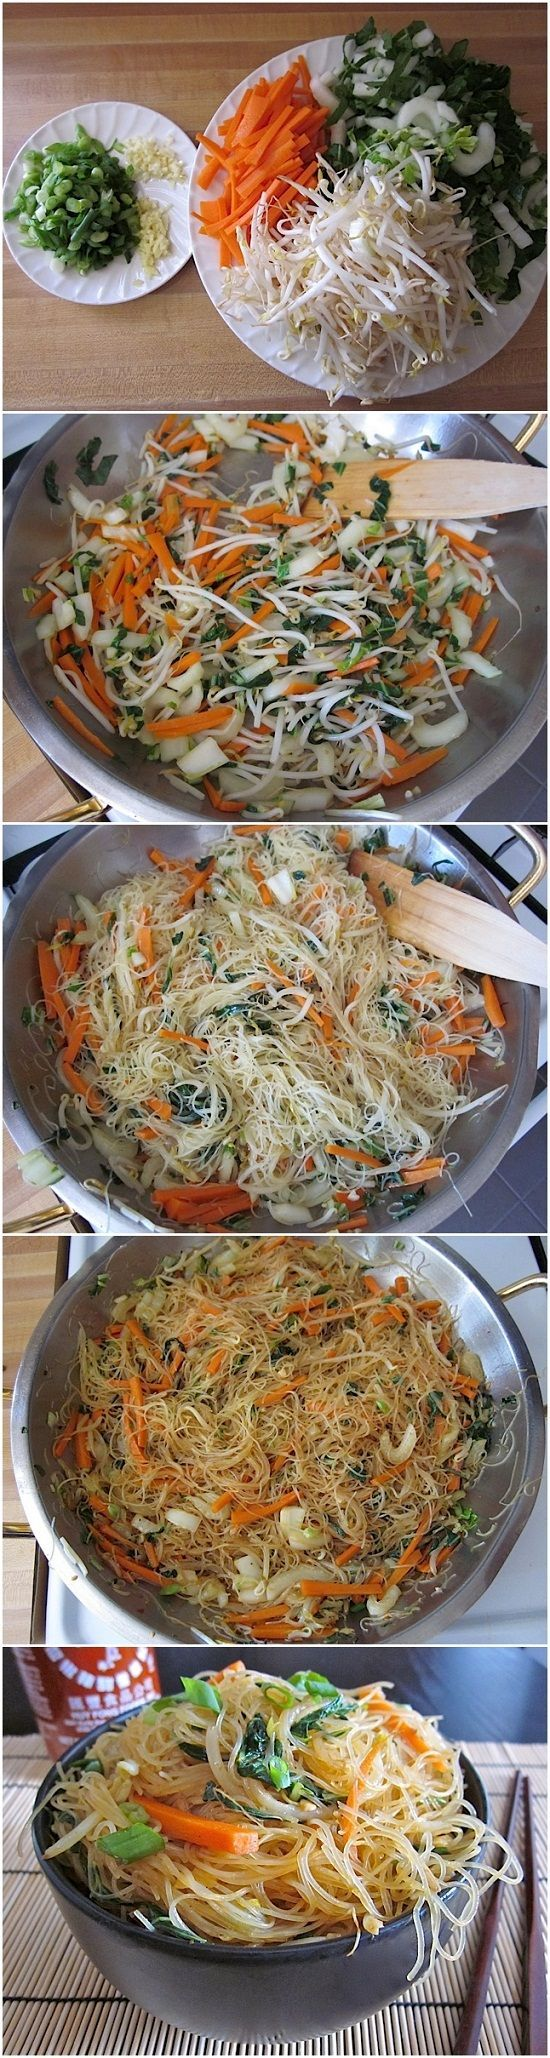 Singapore Noodles Recipe my favorite food stir fry noodles [ Borsarifoods.com ] #dinner #recipes #food